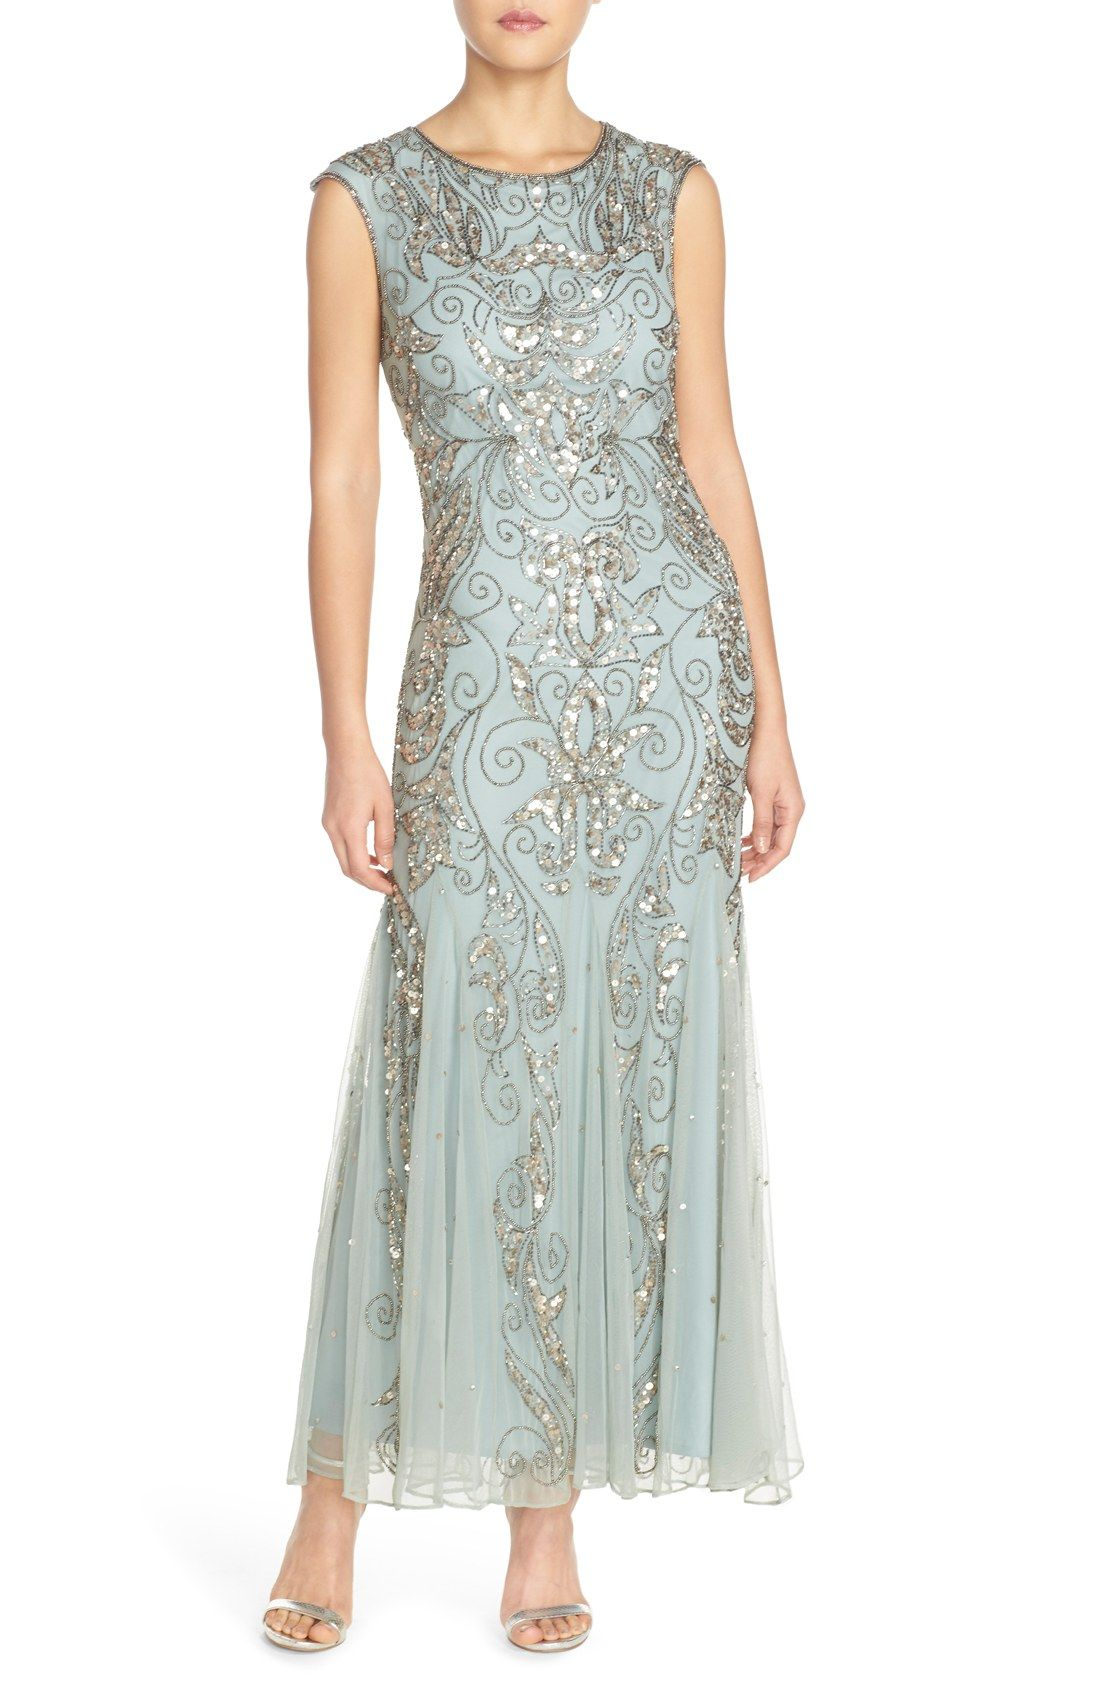 Mother of the Bride or Groom Dresses | Groom dress, Petite sizes and ...